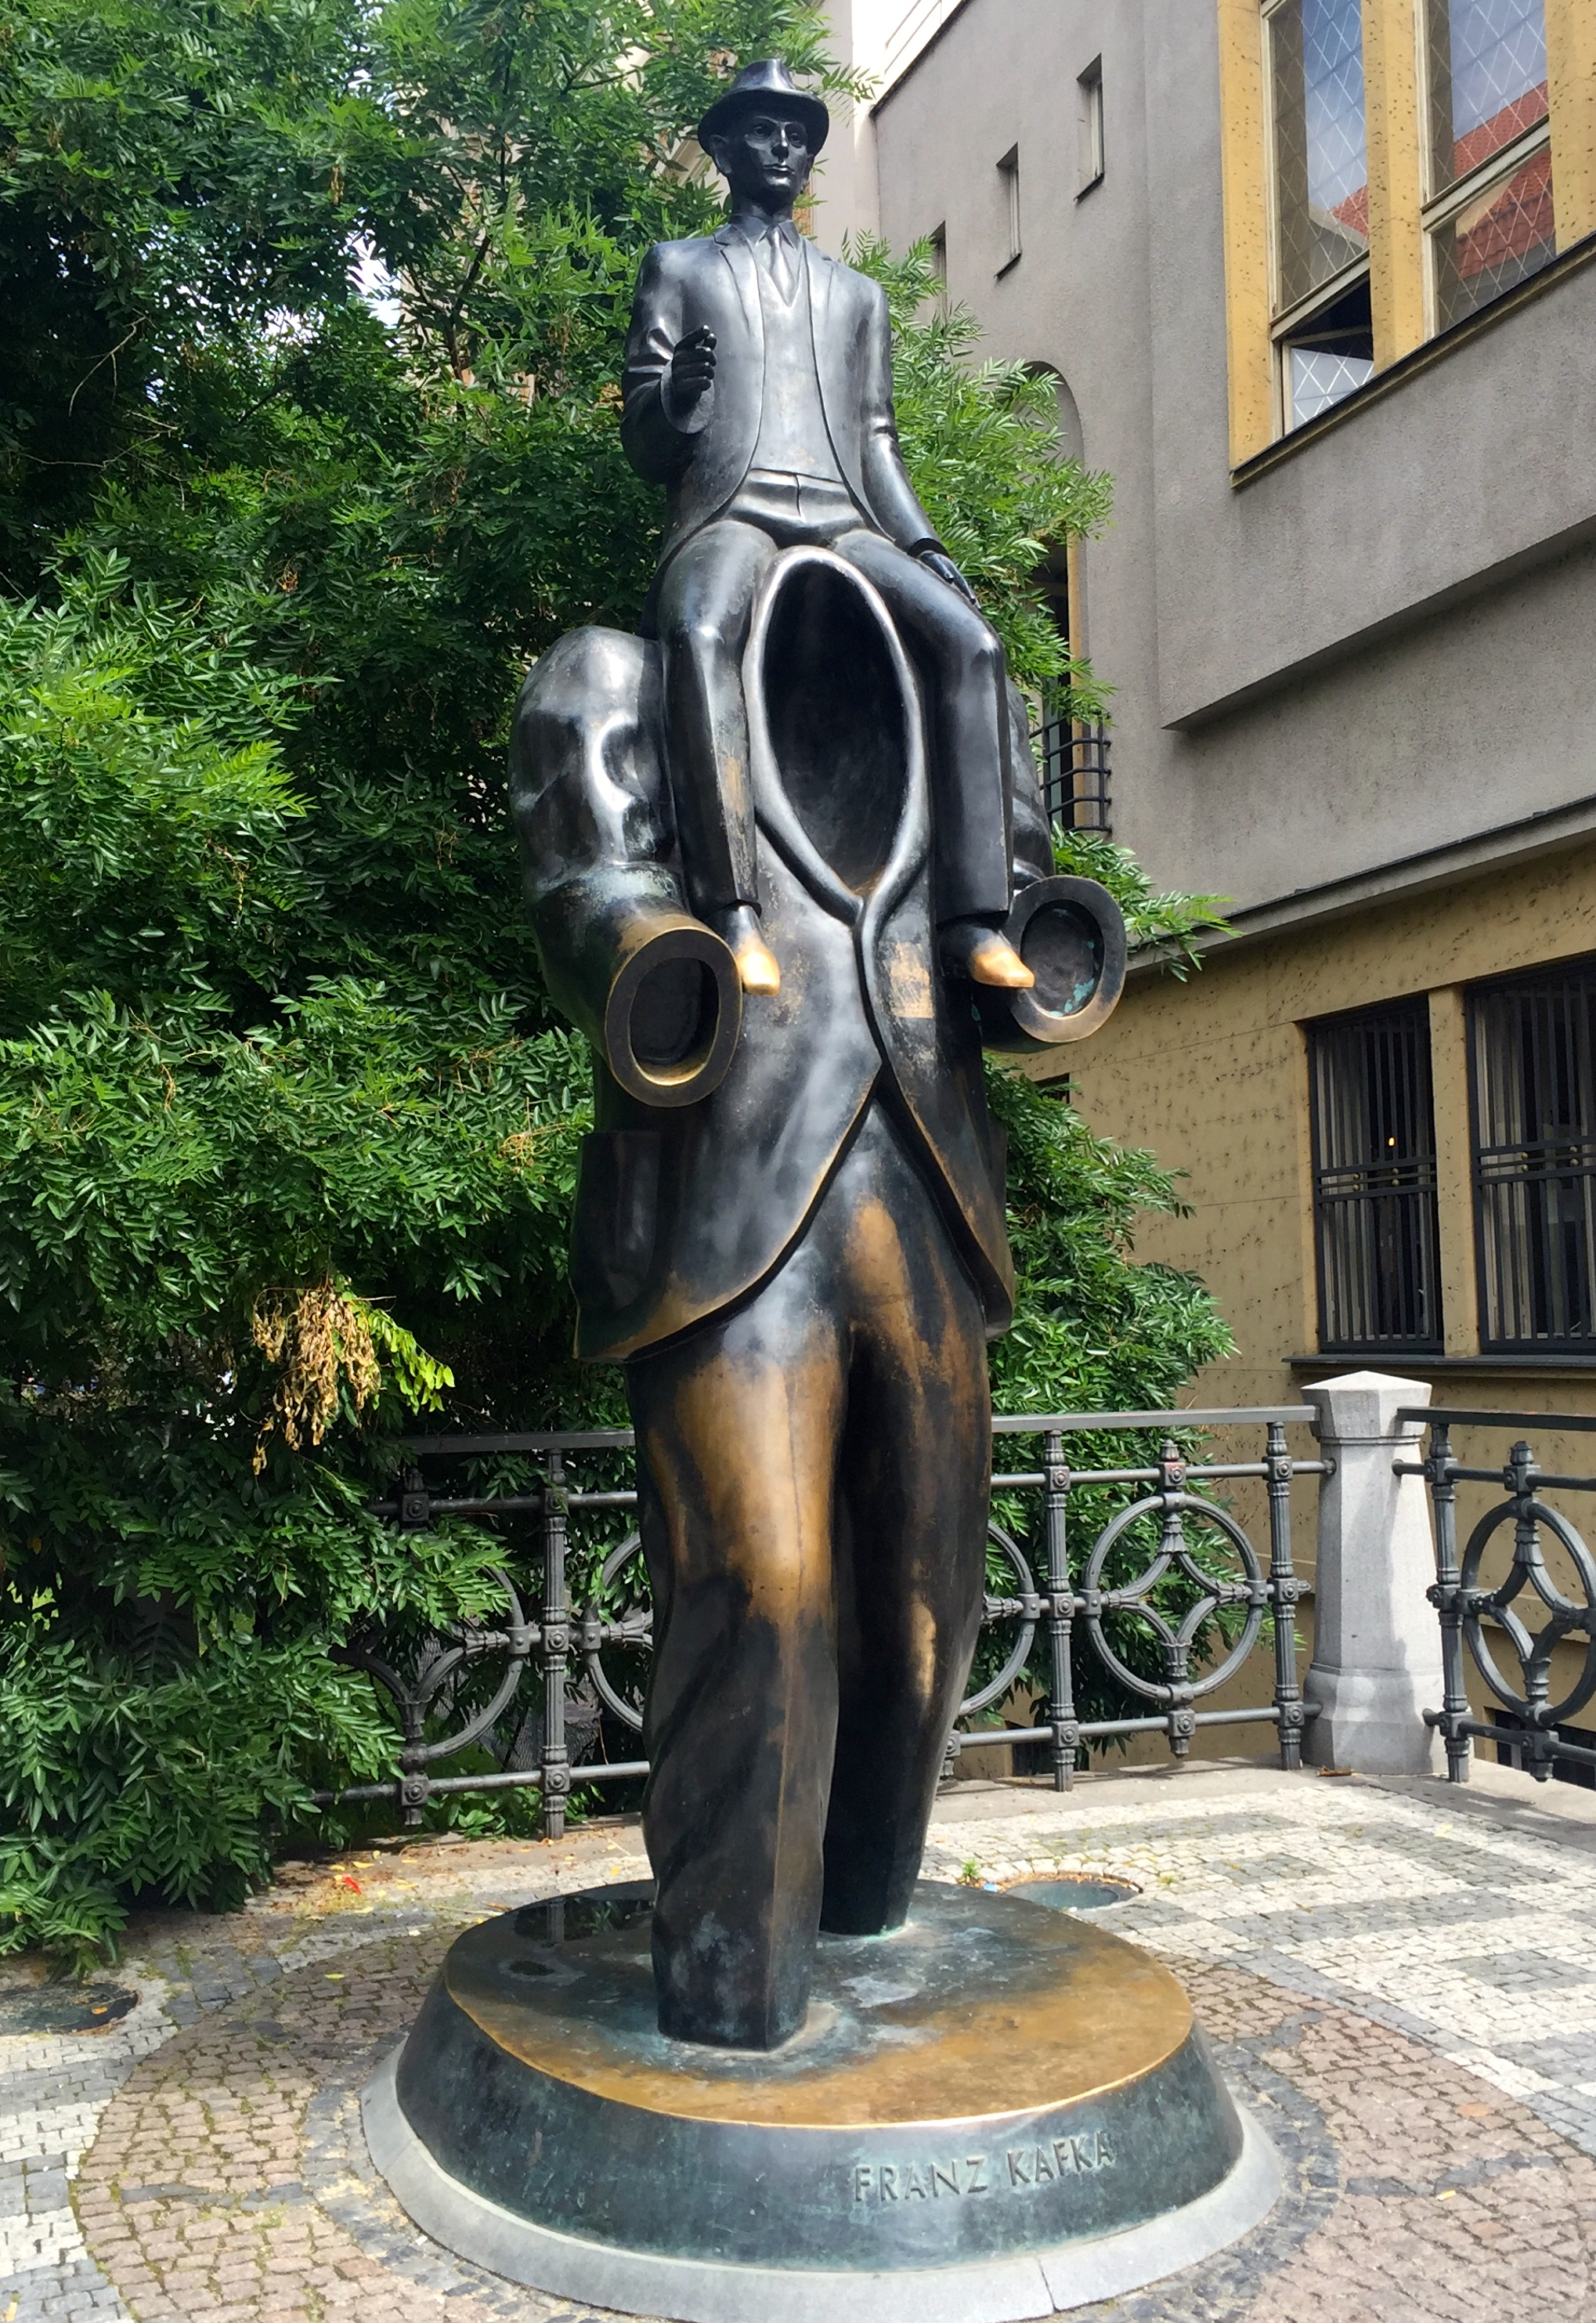 kafka-statue-prague-attractions